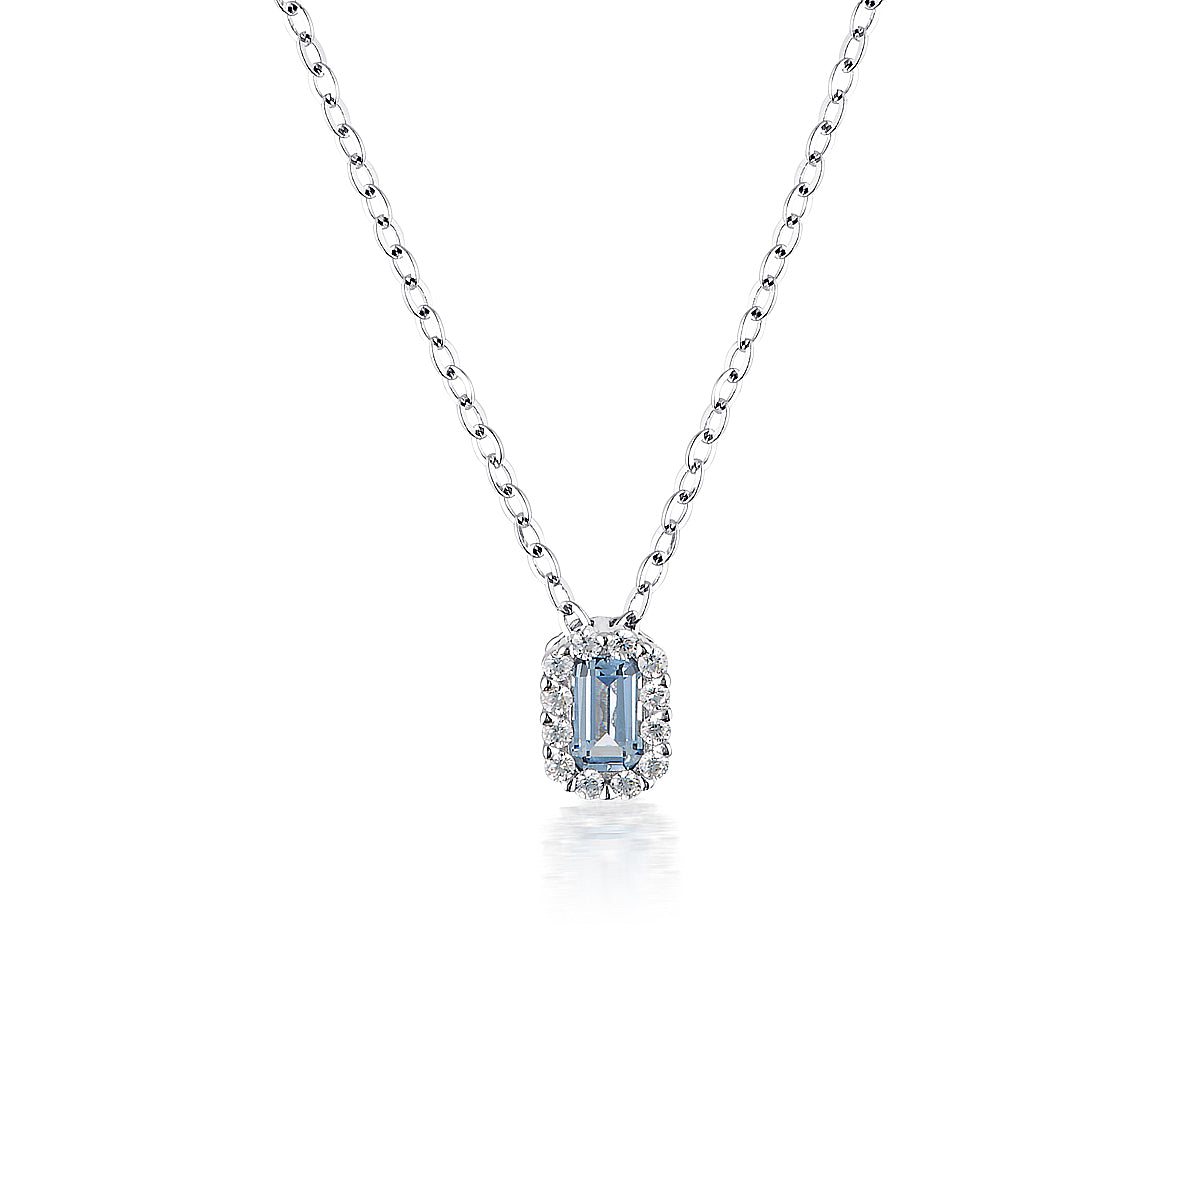 GEORGINI Paris Aqua Spinel Rhodium Pendant